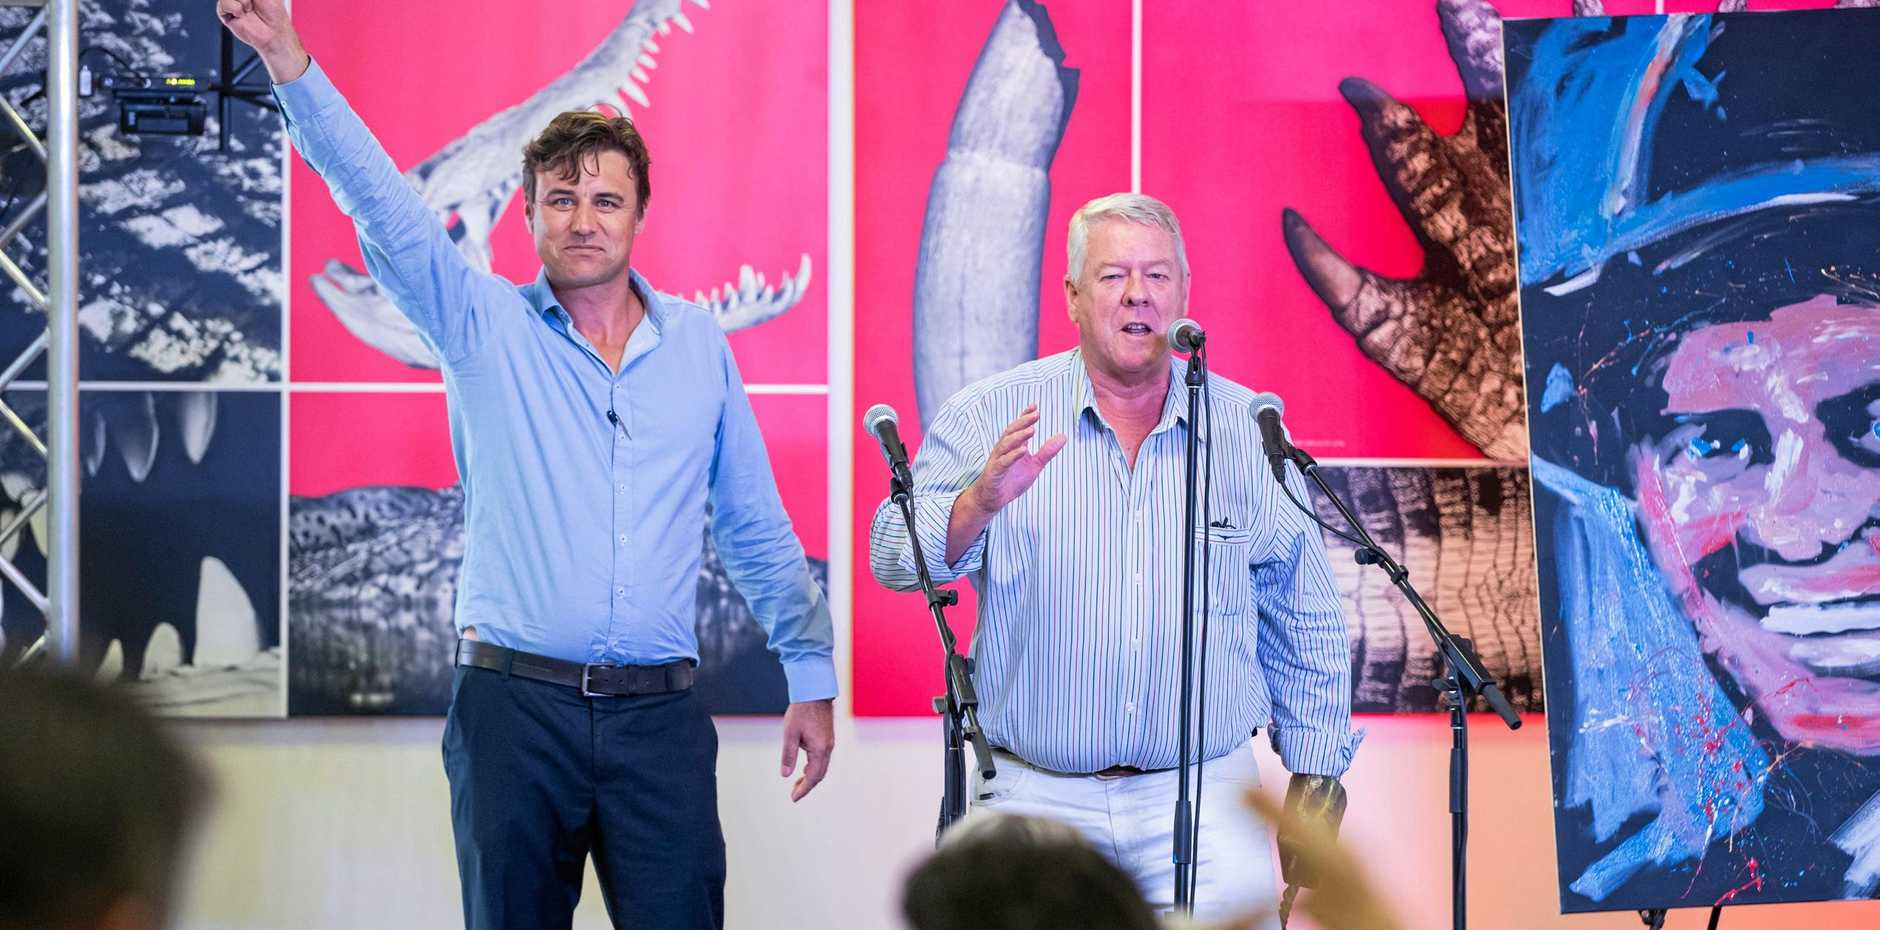 MAKING A DIFFERENCE: Auctioneer Jeremy O'Donaghue (left) on stage with John Wagner during Darwin's It's A Bloke Thing prostate cancer luncheon which raised $336,000 for Darwin's first prostate cancer nurse.